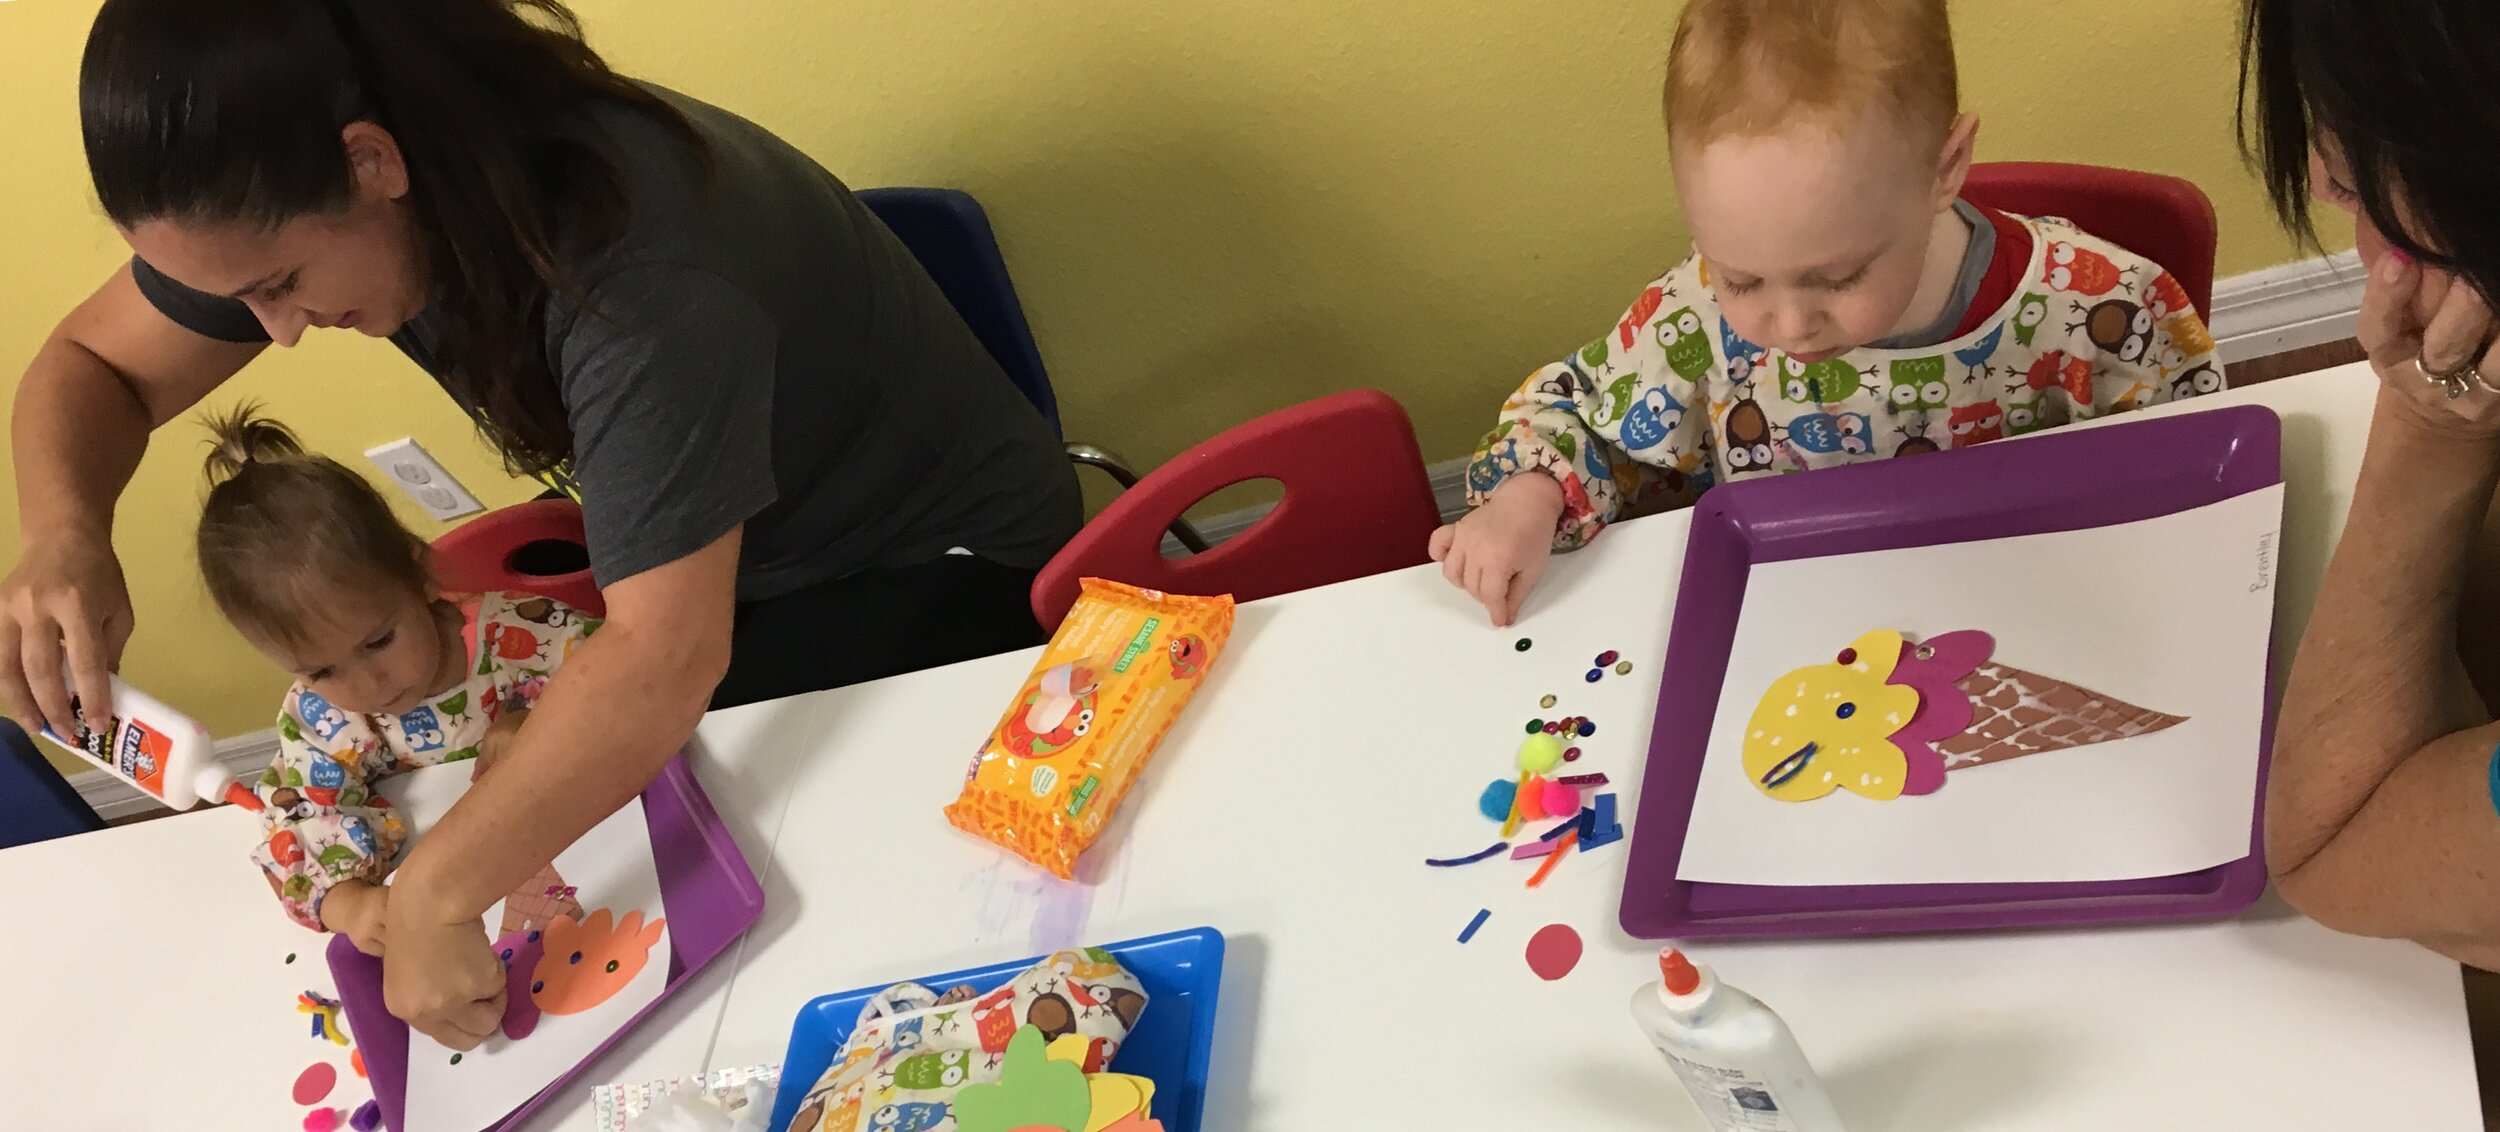 Baby Picasso - Baby Picasso is a fun Art class for ages 8 months to 3 years. Infants & toddlers  will enjoy sensory & fine motor skills experiences in this child & caregiver class. Includes Open Play admission before or after class. Please call to sign up at least a day in advance, walk ins permitted as space allows. Classes take place, during Open Play, on Tuesday's from 4:00-4:30 & Friday's 9:45-10:15.